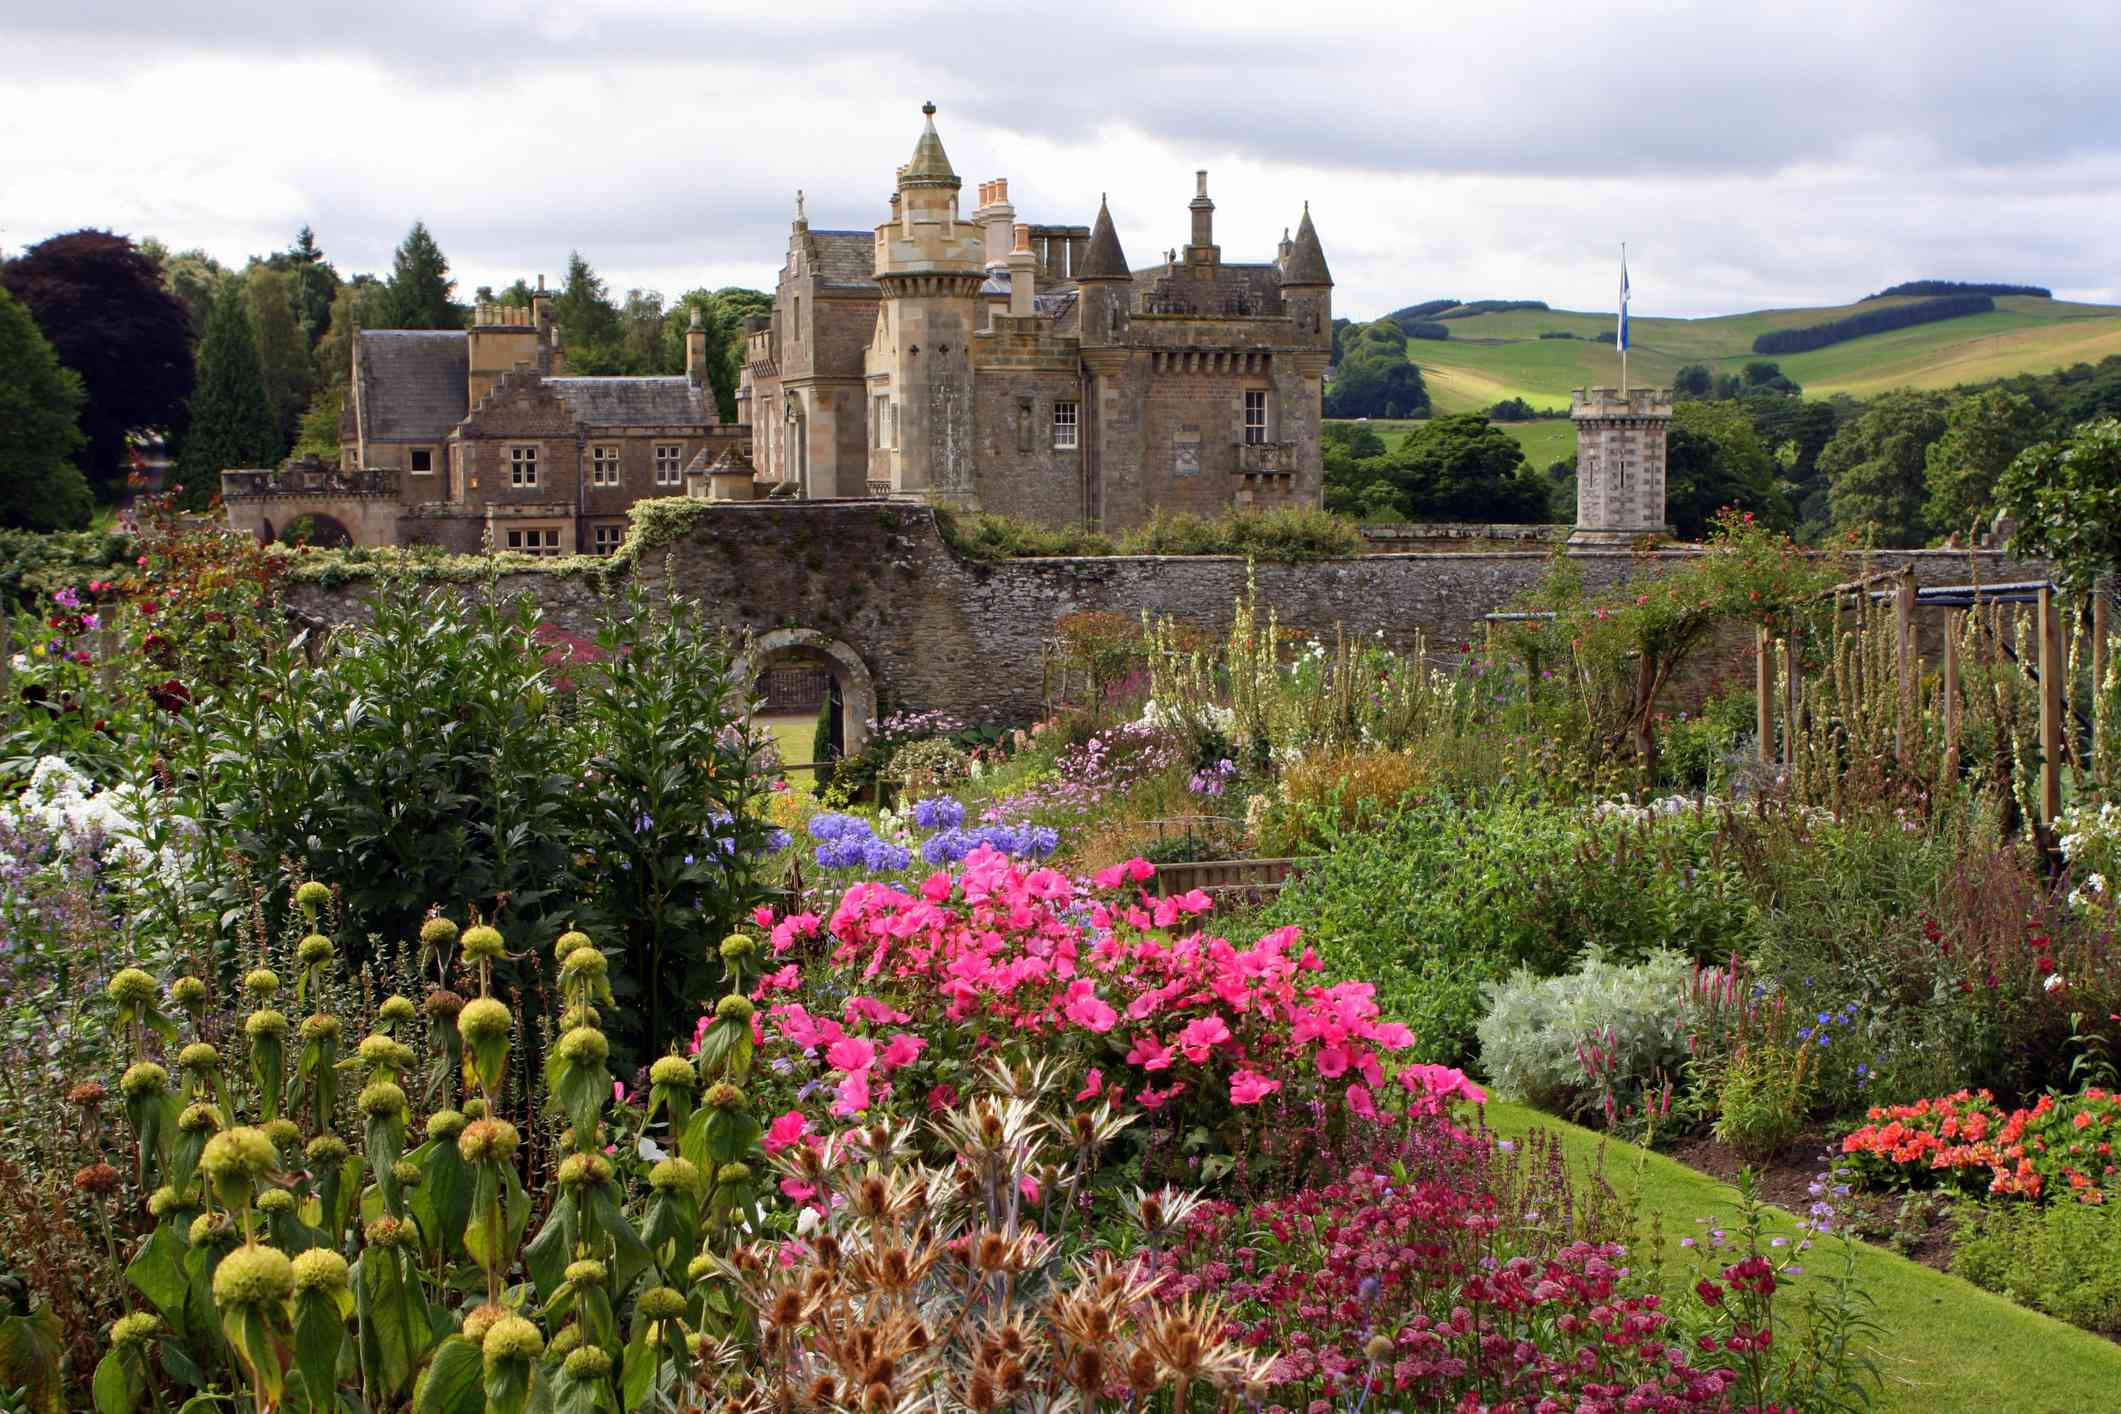 Abbotsford House seen from its blooming gardens